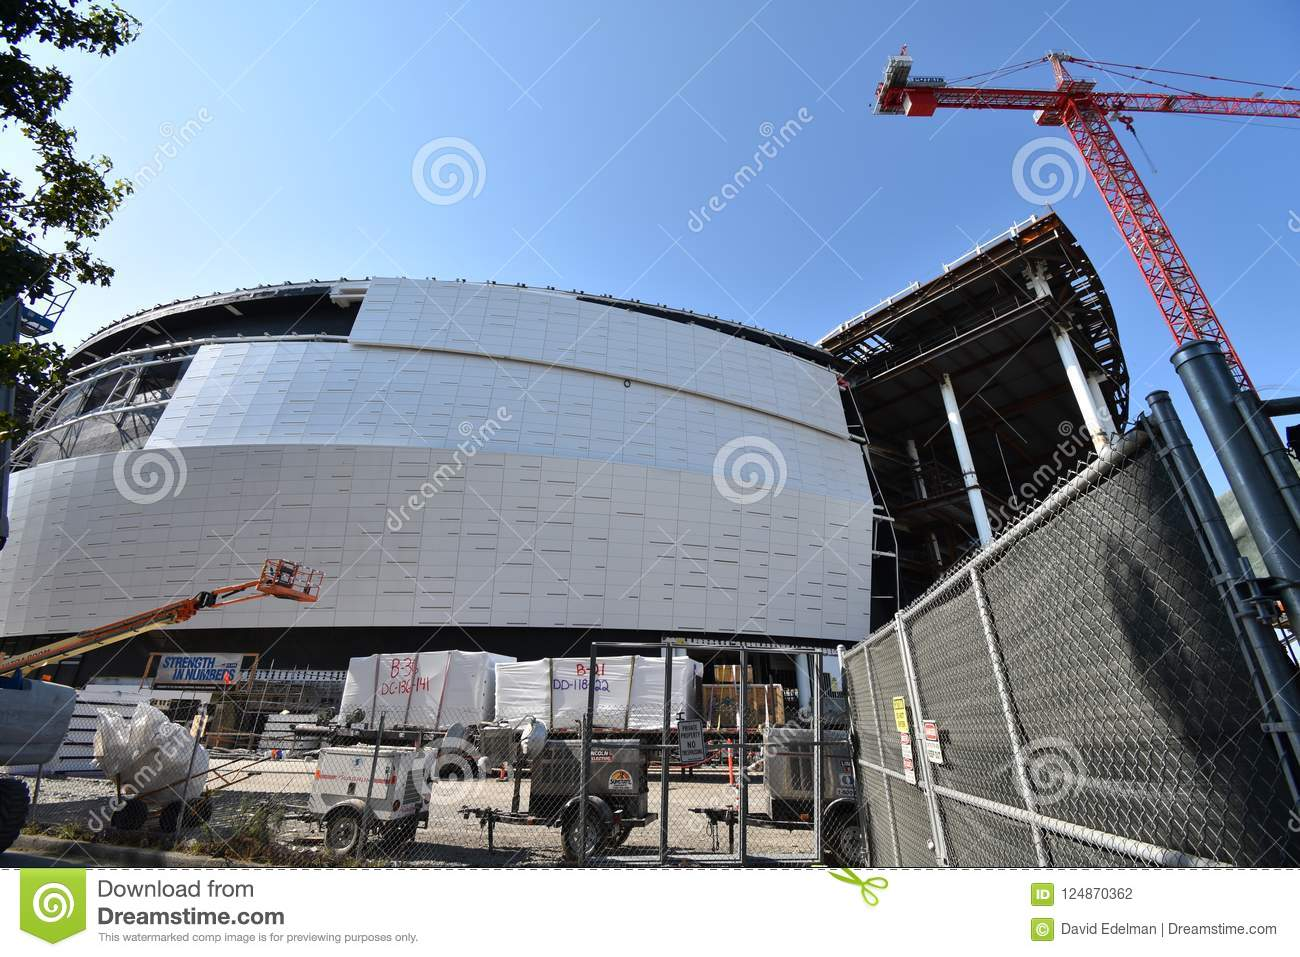 The Continuing Golden State Warriors New Stadium Under Construction 7 Editorial Photography Image Of Funding Public 124870362